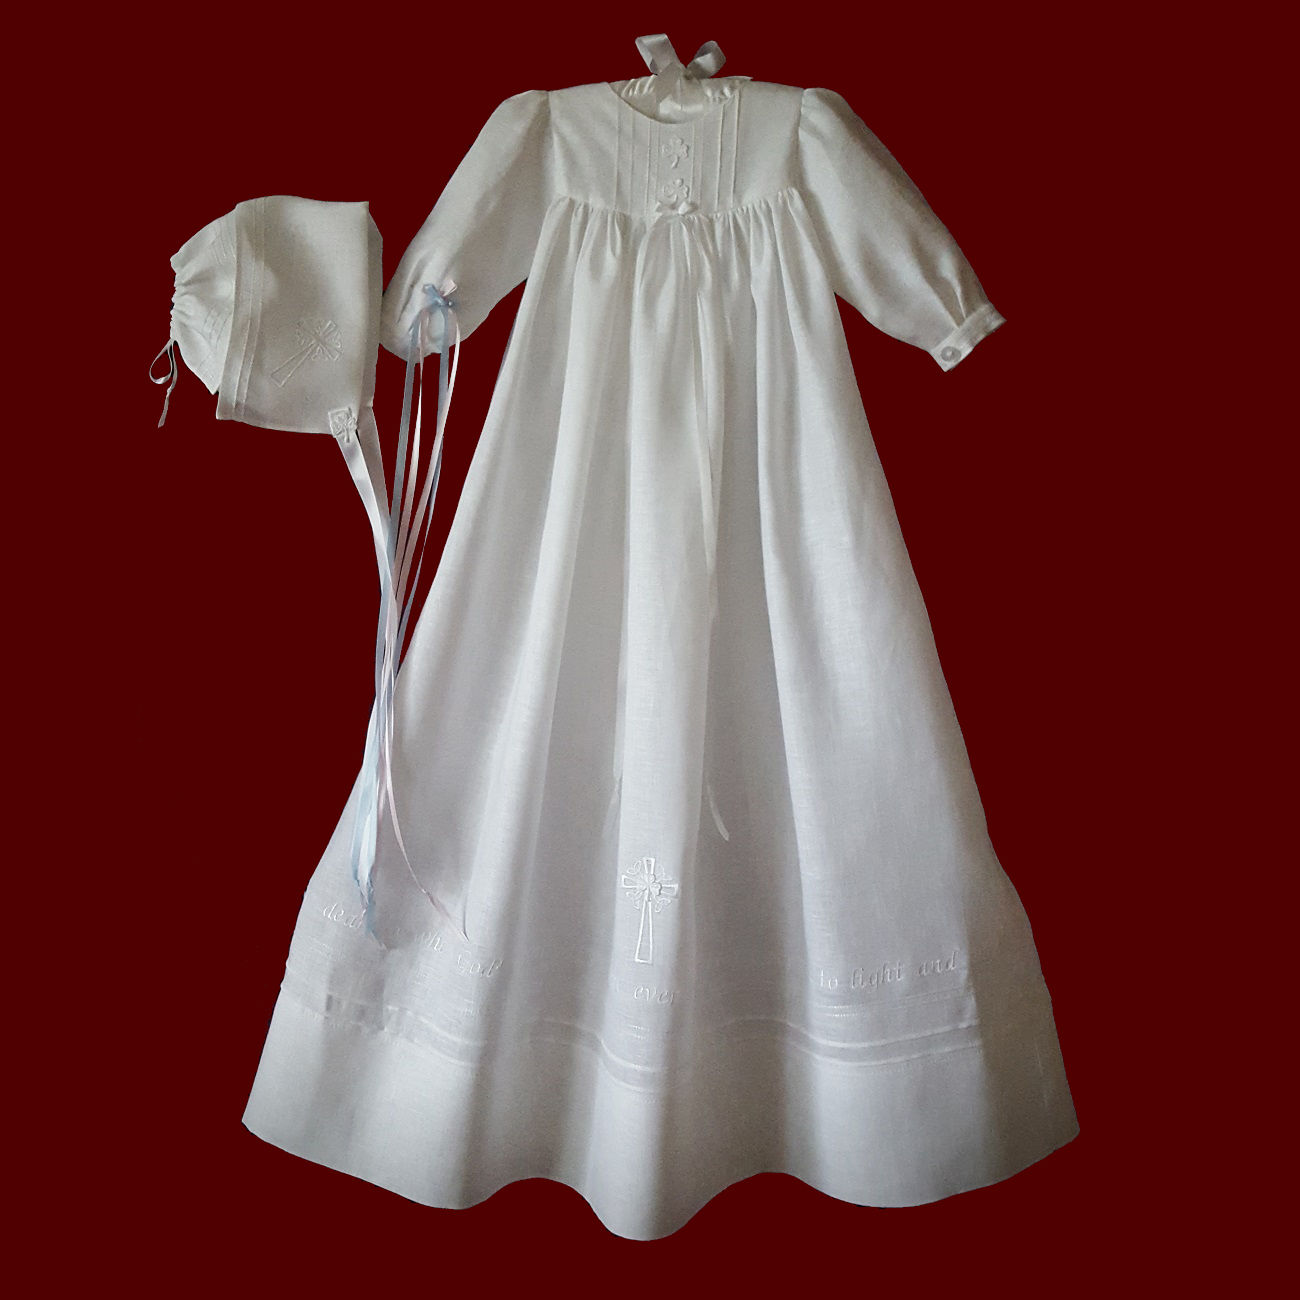 Angel of God Irish Linen Unisex Christening Gown With Magic Hanky Bonnet, Size 3-6 Months